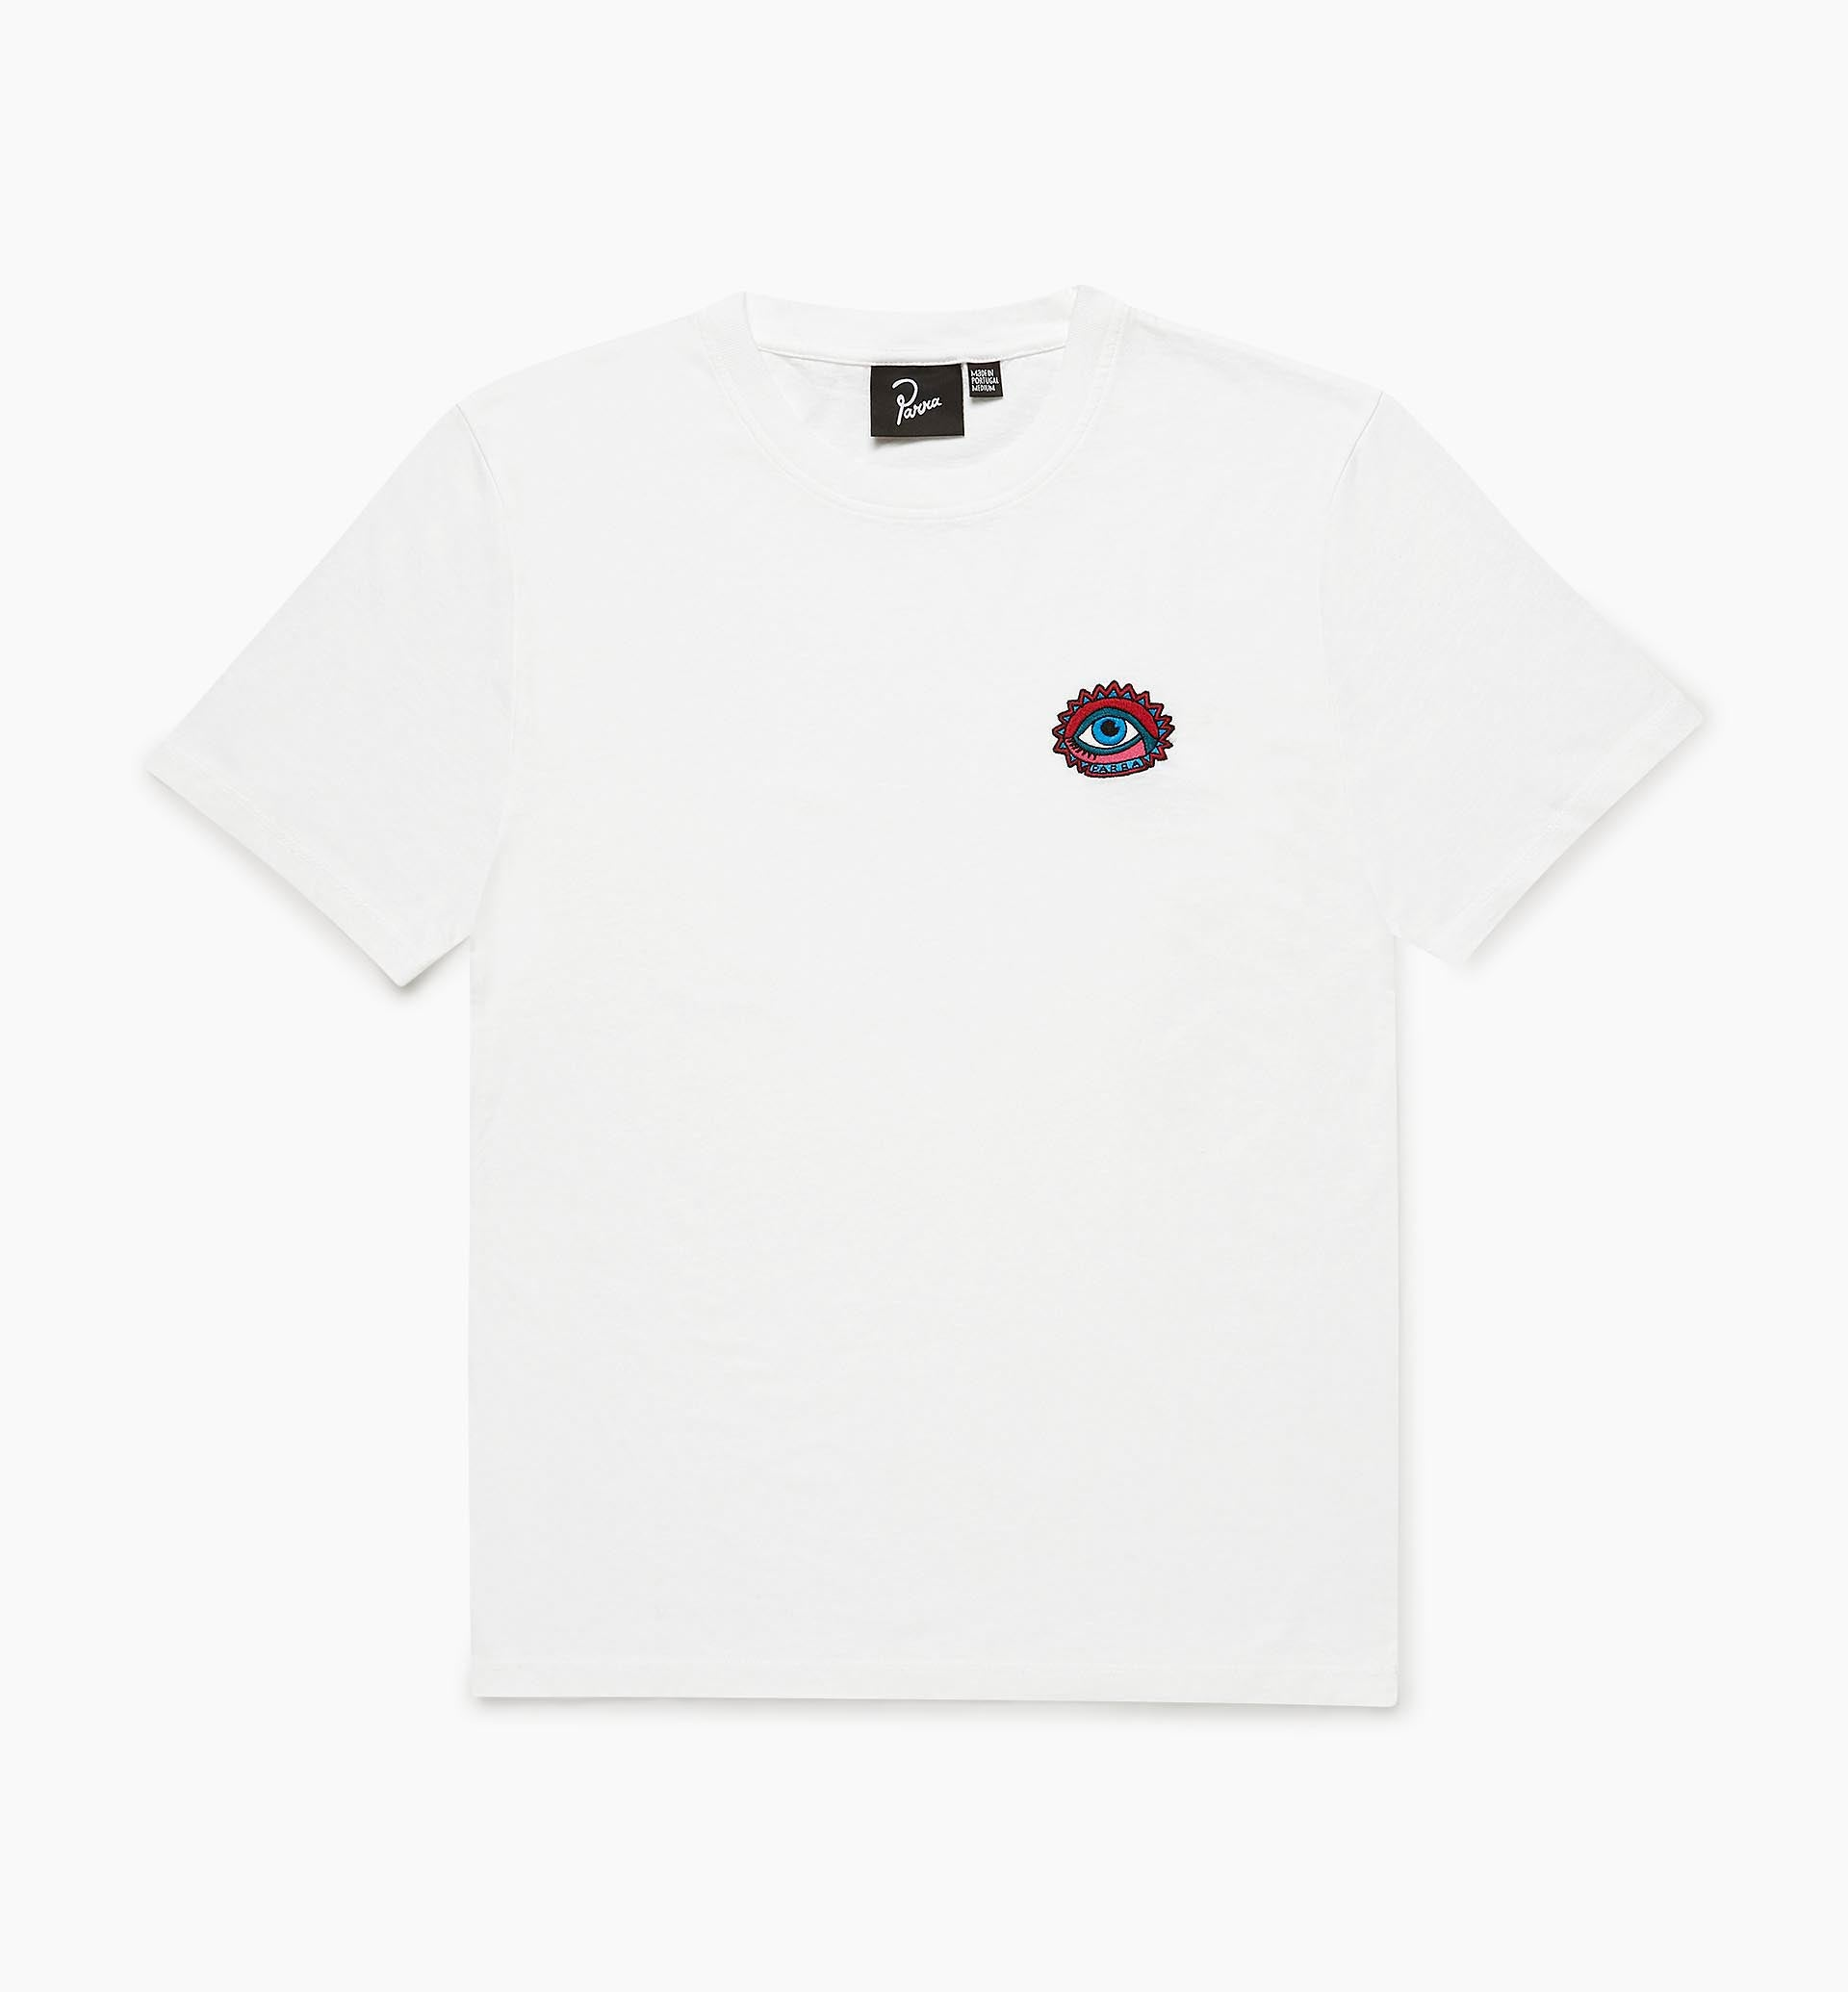 Parra - open eye t-shirt